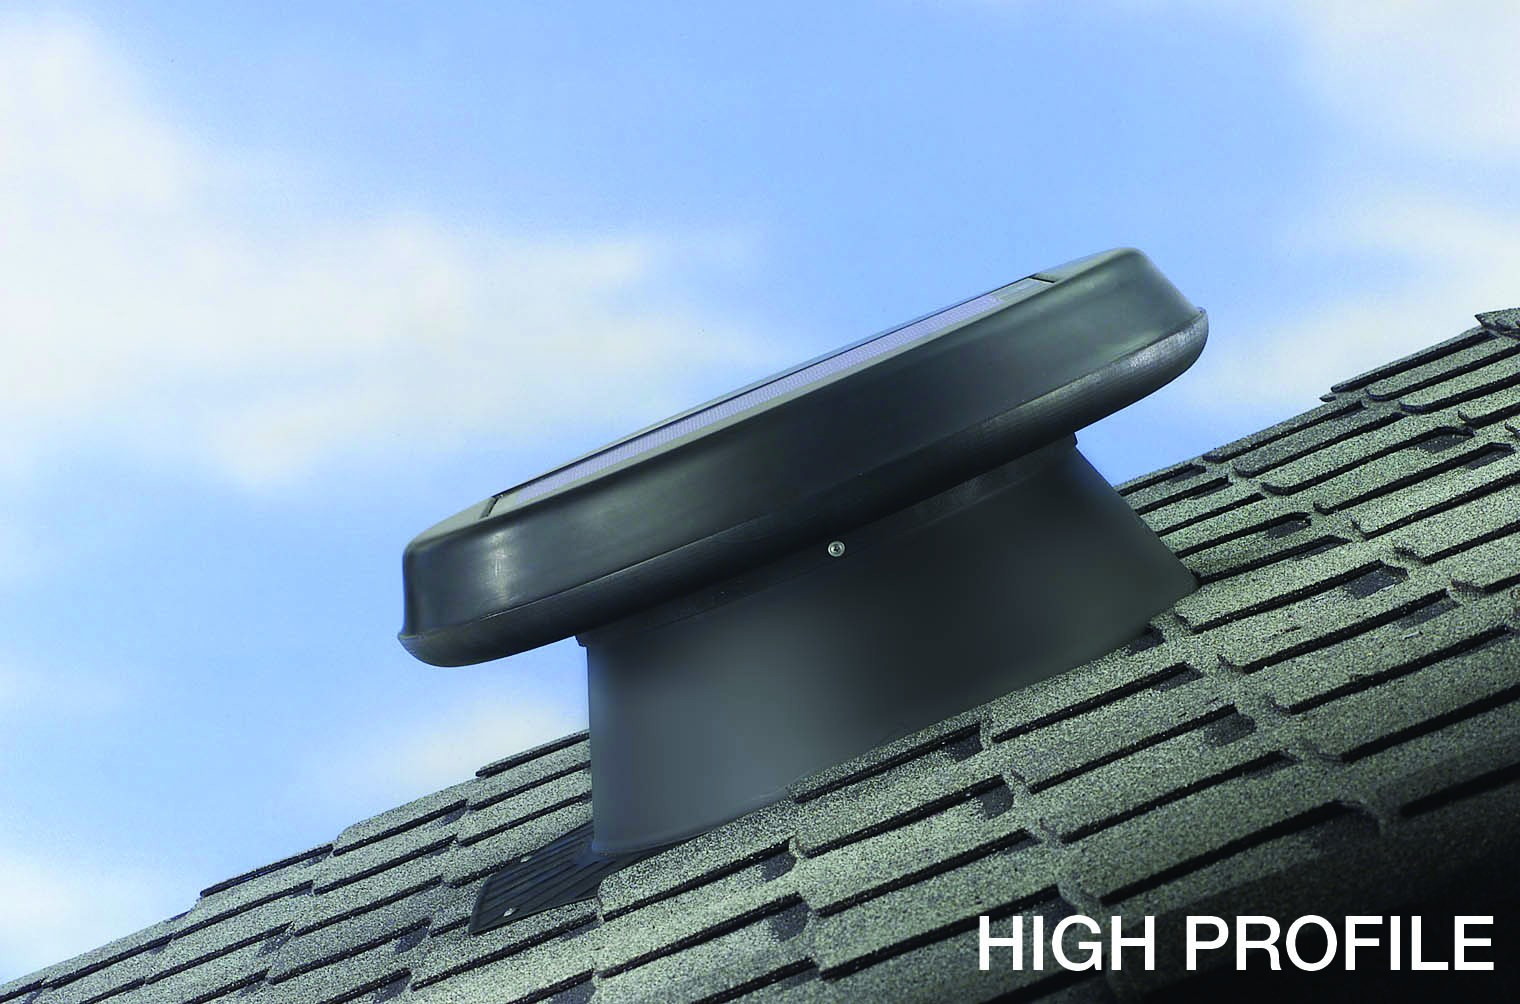 Solar Star Roof Attic Solar Fan / Vent High Profile Model by SolaTube RM1200